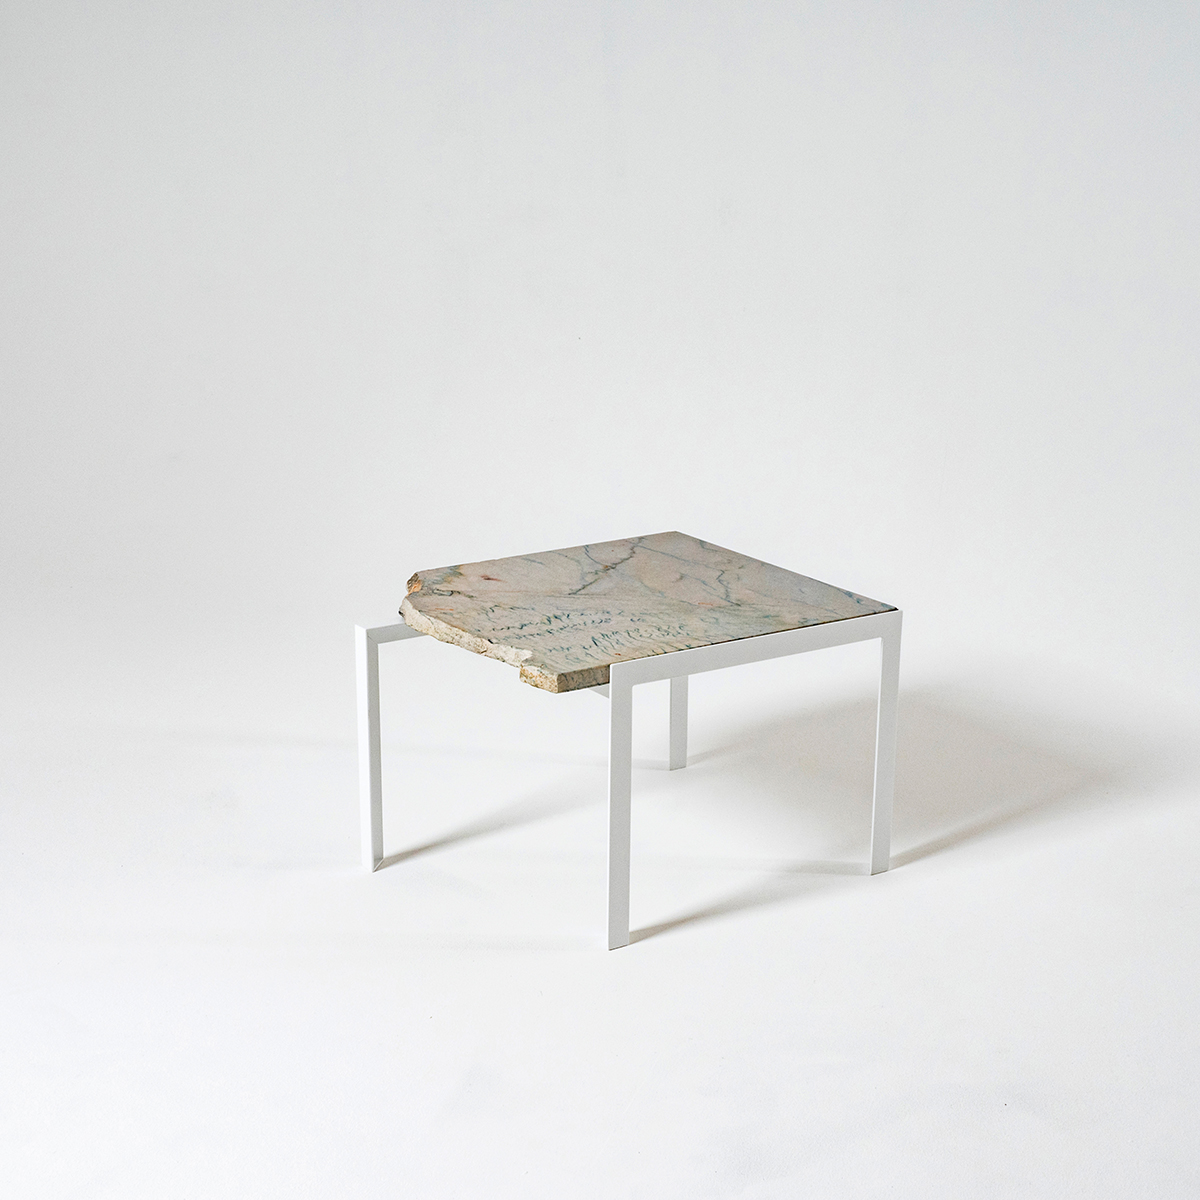 Petite table web 72 4 for Petite table d angle